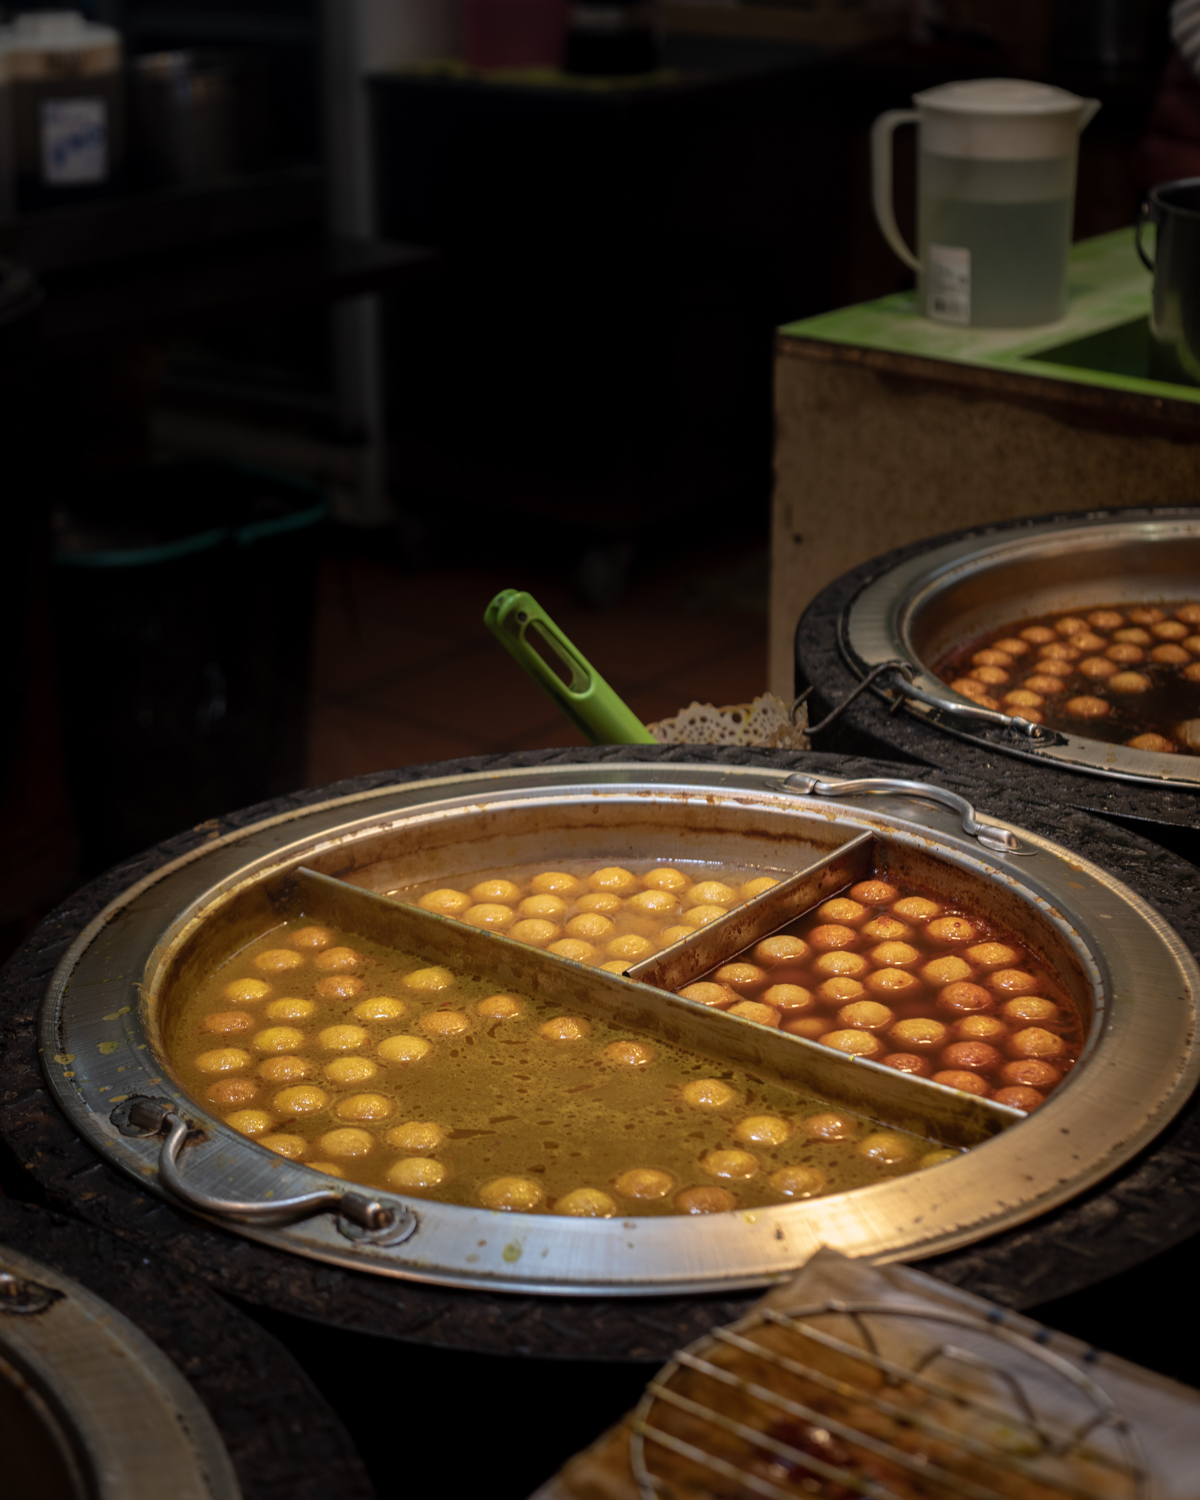 Street food in Taiwan: seriously over-rated